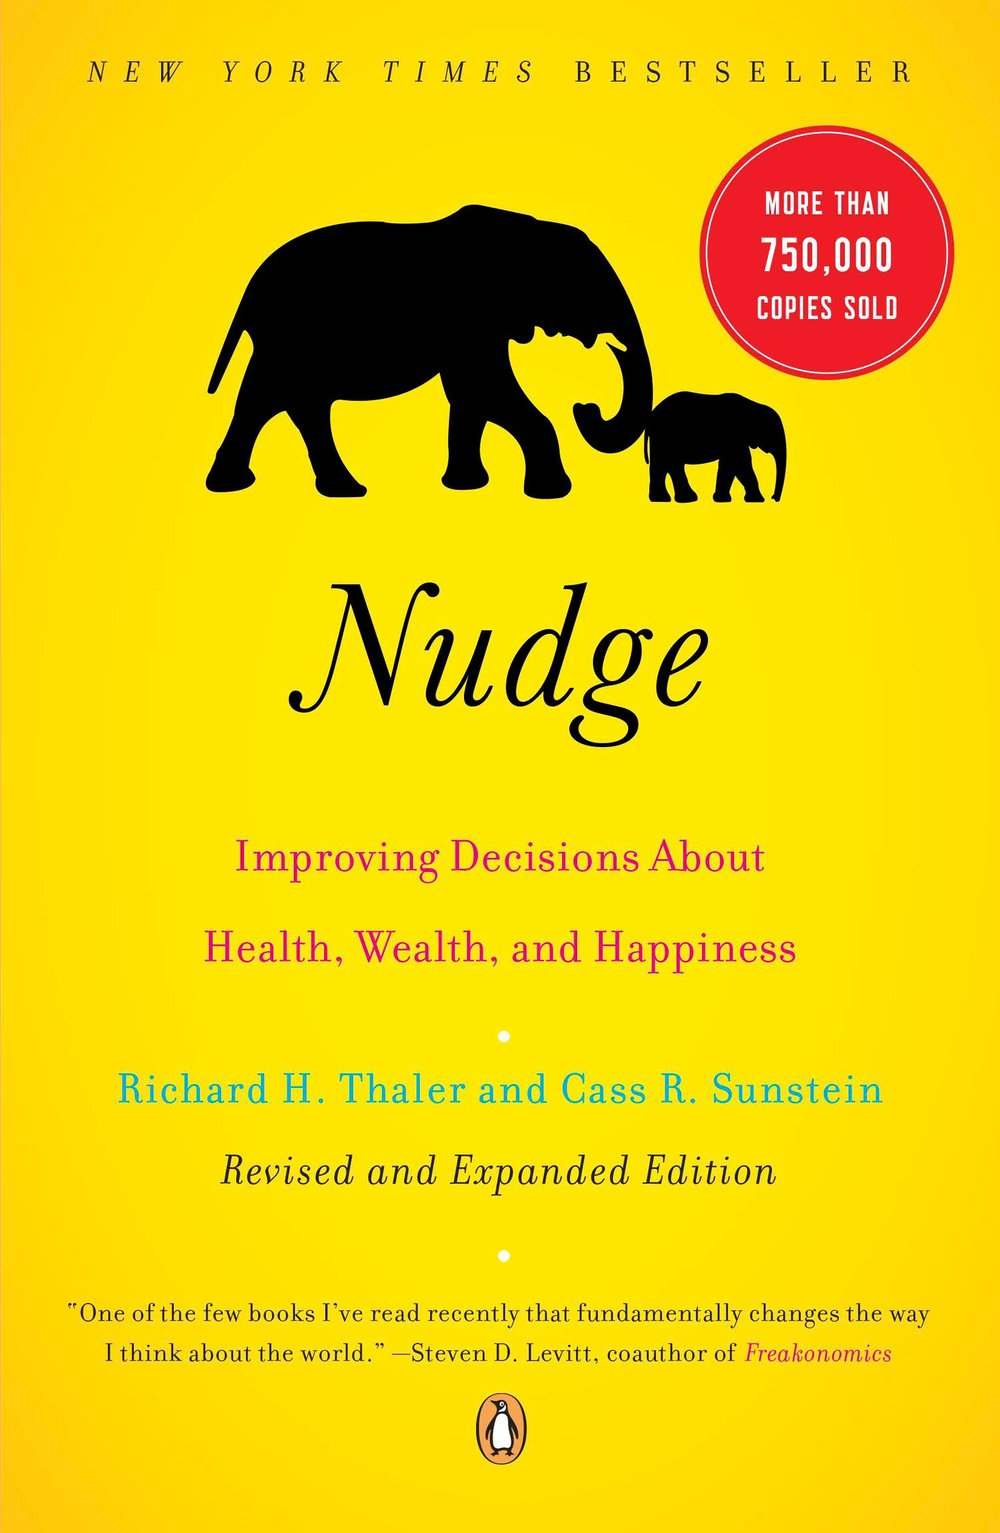 "<a href=""http://amzn.to/1MzKa7Z"">Nudge<strong>We're ruled by our unconscious, irrational cognitive biases. Identifying them is a first step in nudging our behavior the right direction.</strong></a>"